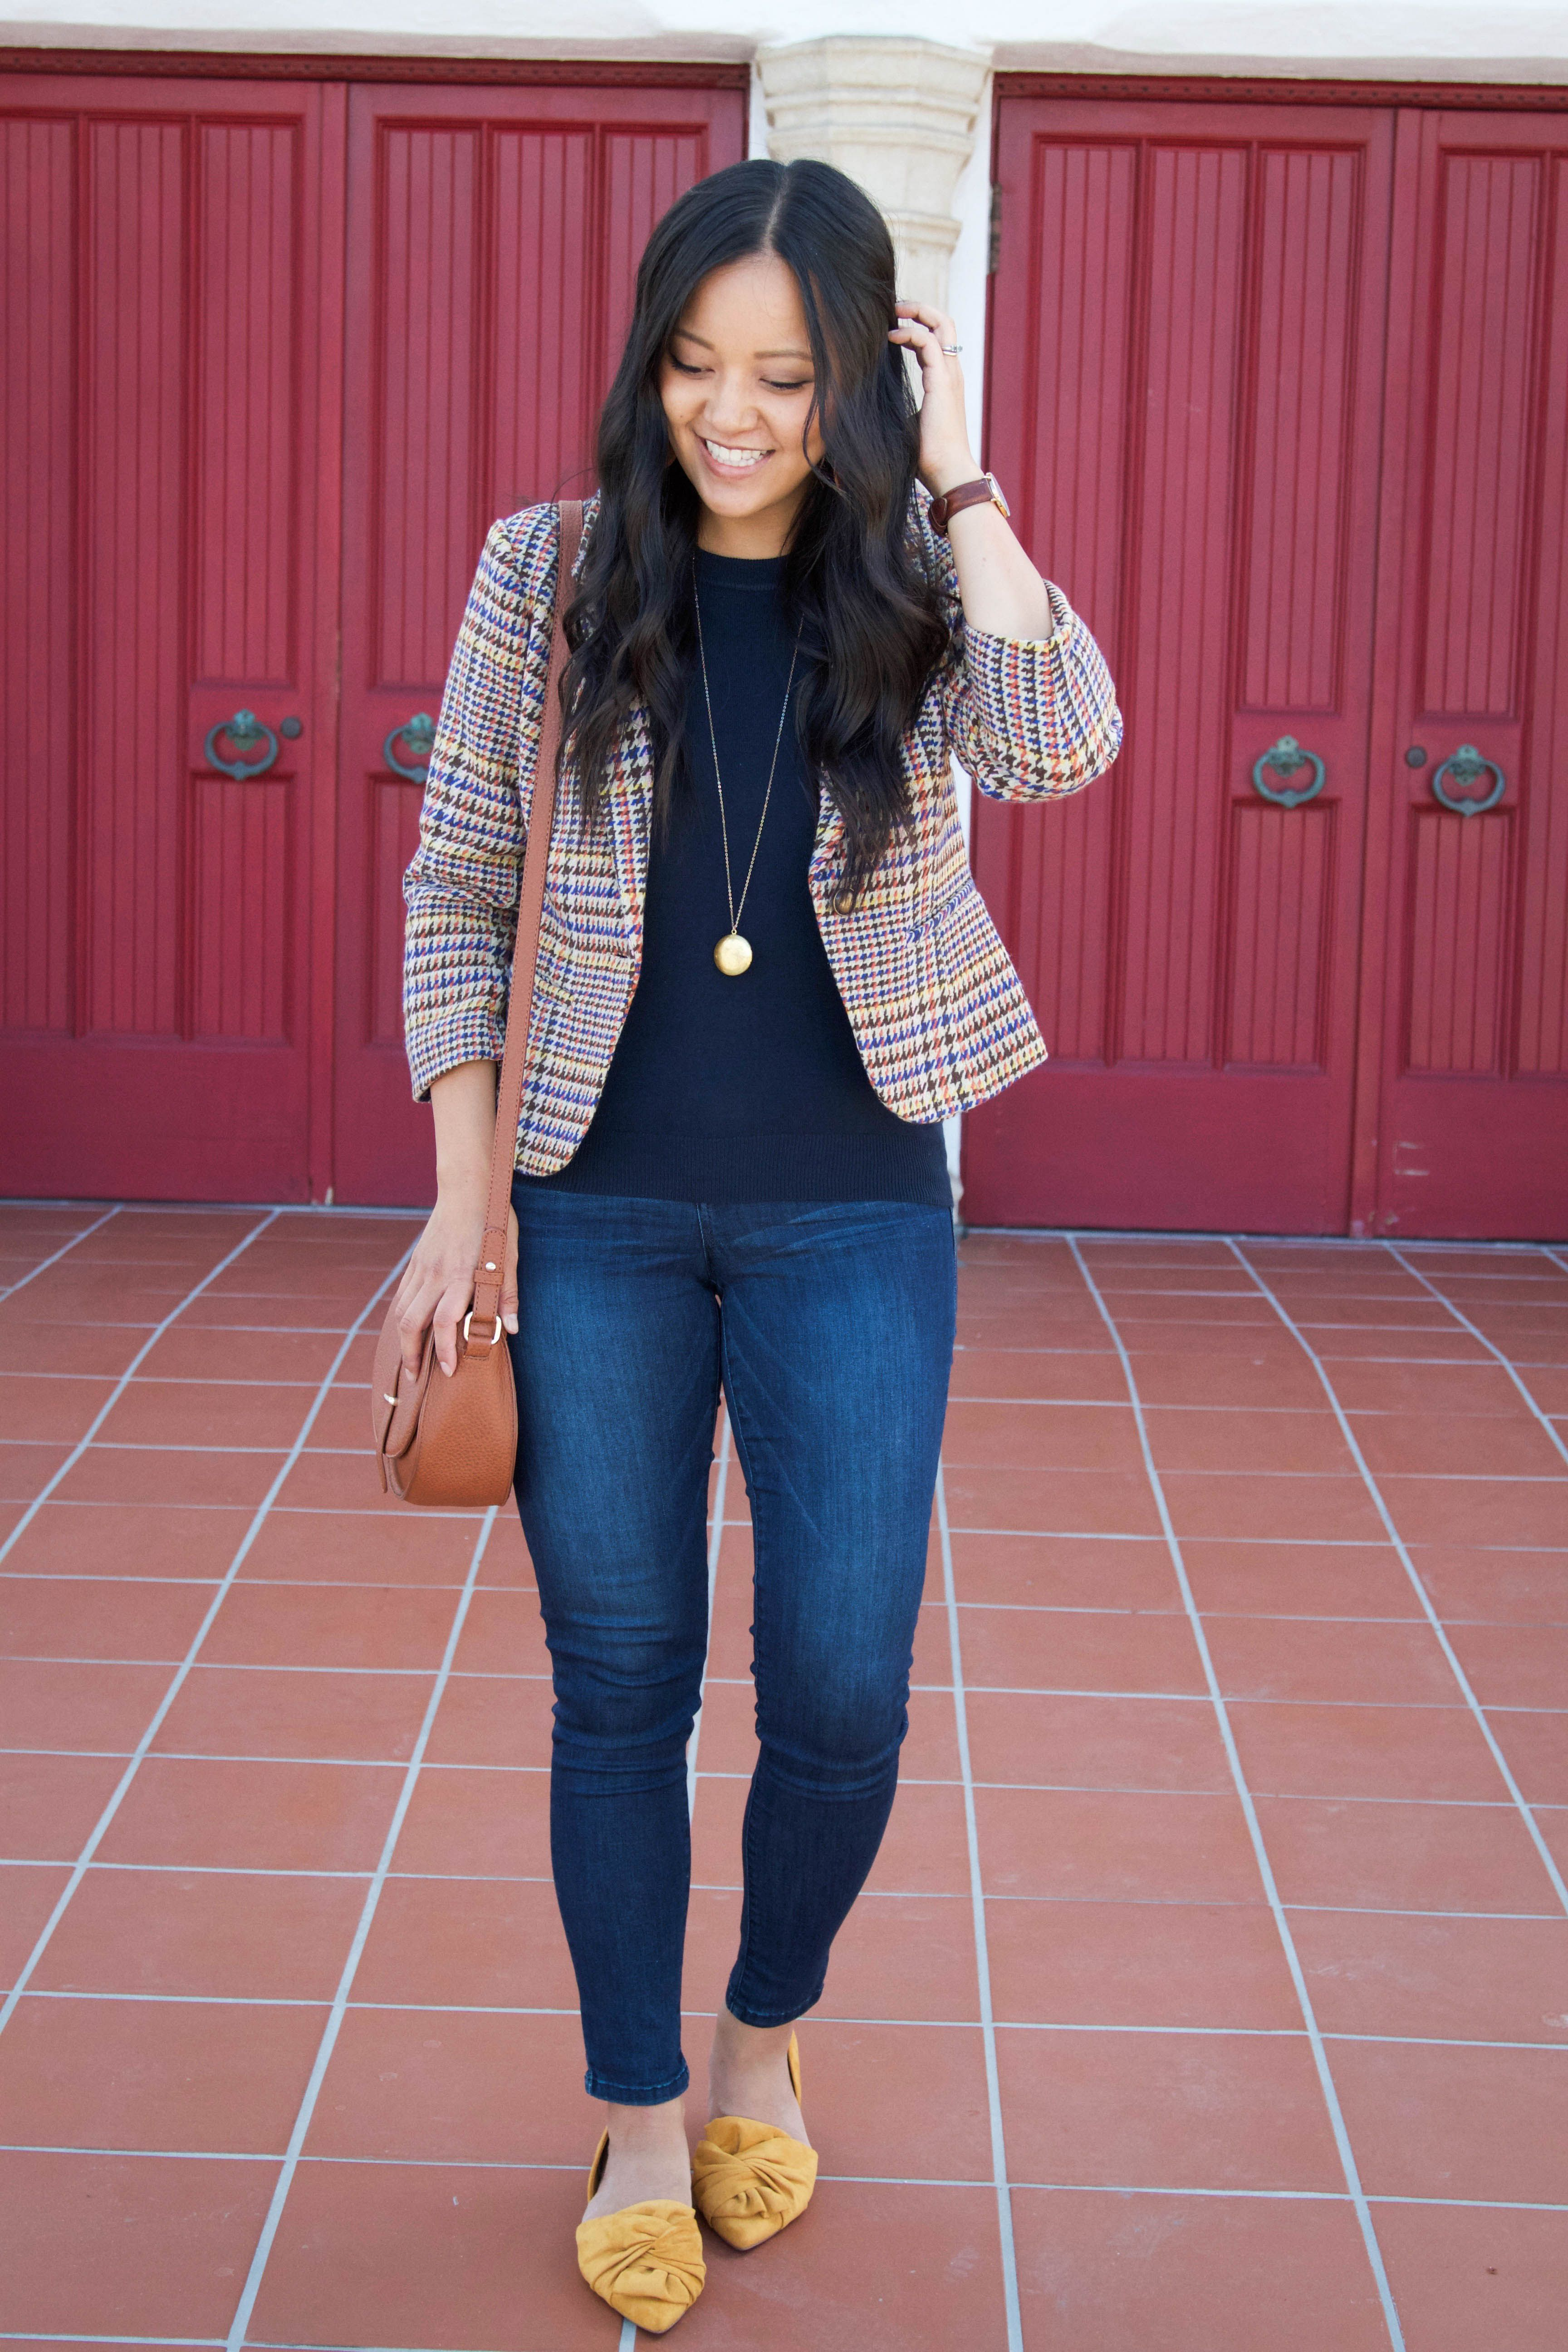 Tweed Blazer + Navy Sweater + Skinnies + Mustard Flats + Gold Necklace 1a086e4f9